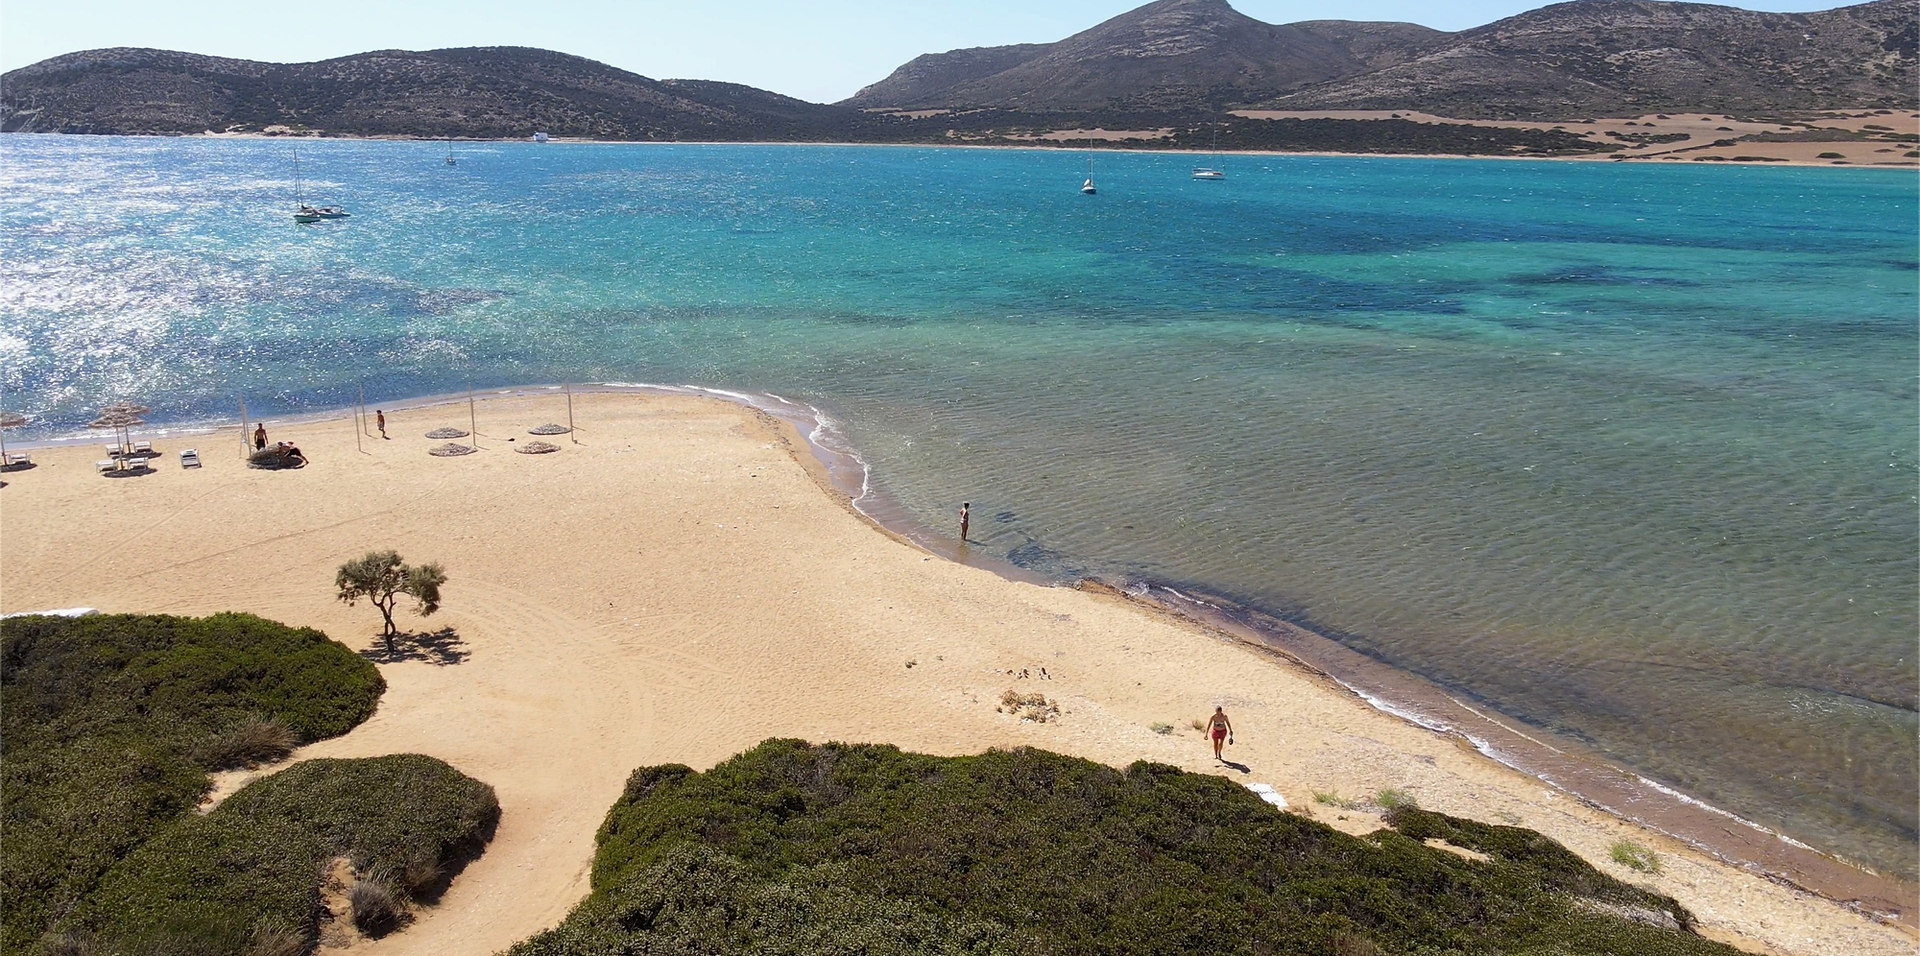 Drone photography sea view in Greece - Antiparos Cyclades Islands